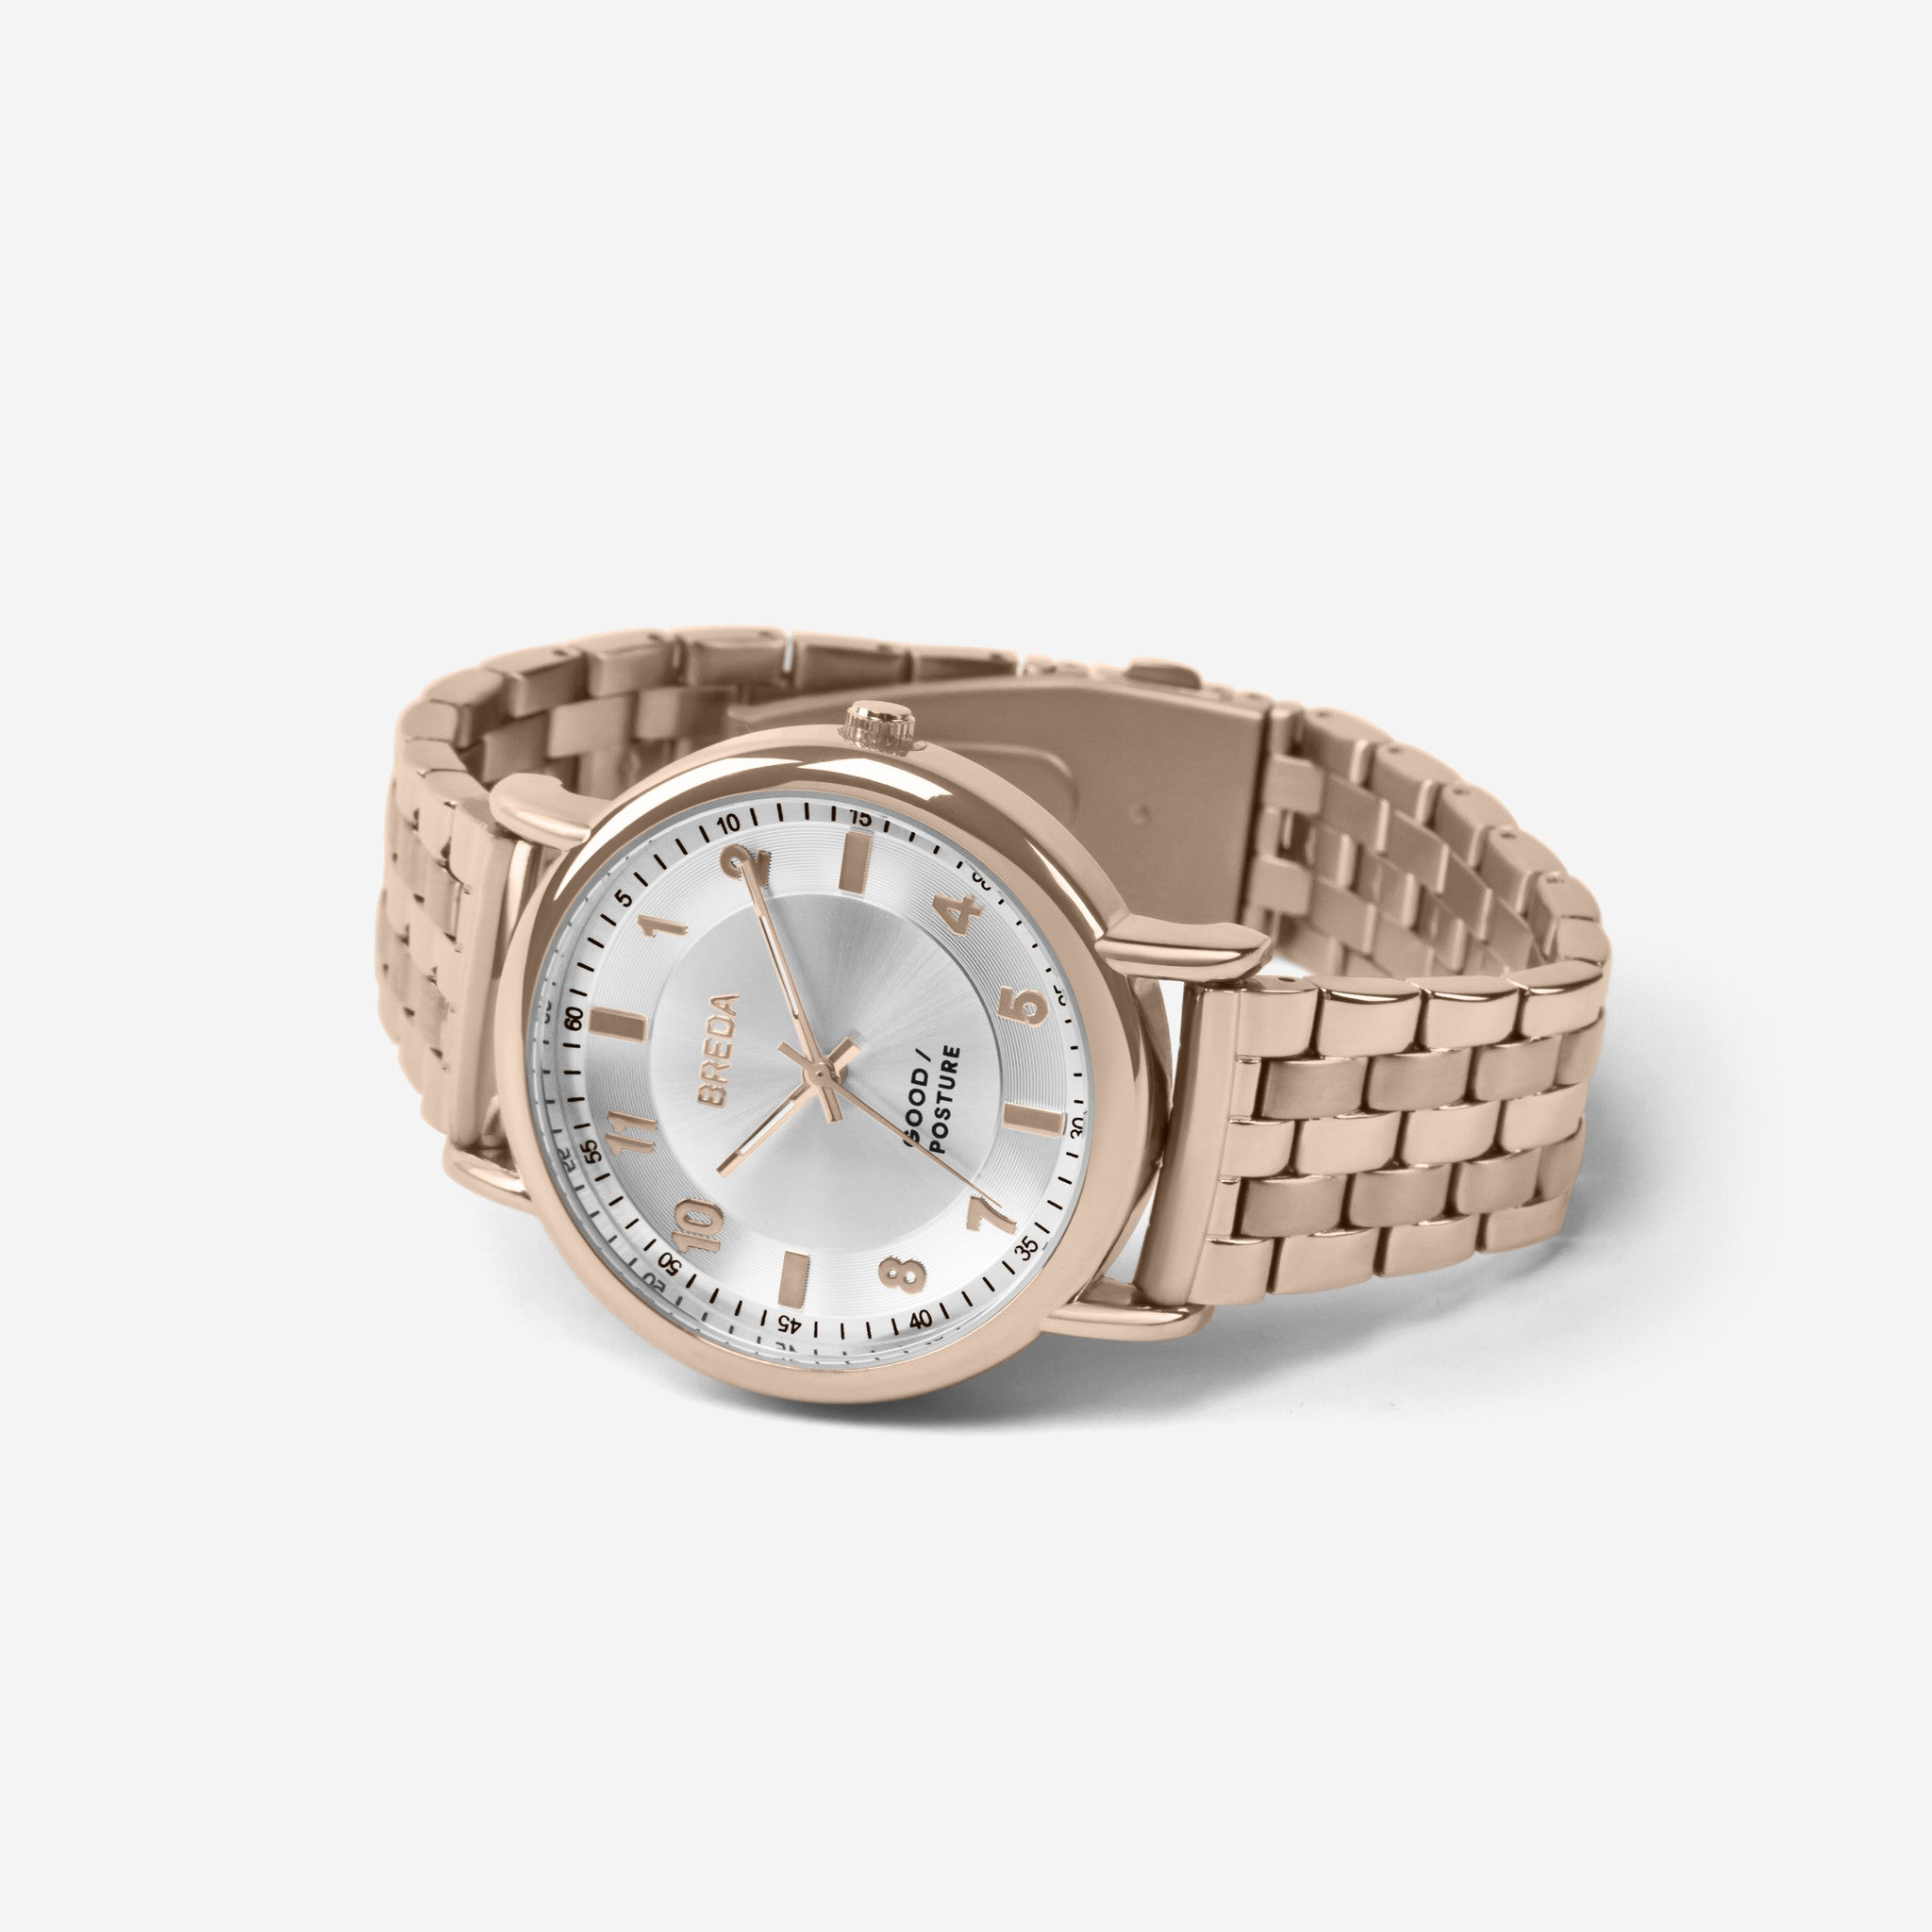 //cdn.shopify.com/s/files/1/0879/6650/products/BREDA-Good-Posture-Theophilus-Martins-Blossom-5017c-Rose-Gold-Watch-Angle_-_Copy_1024x1024.jpg?v=1490821667